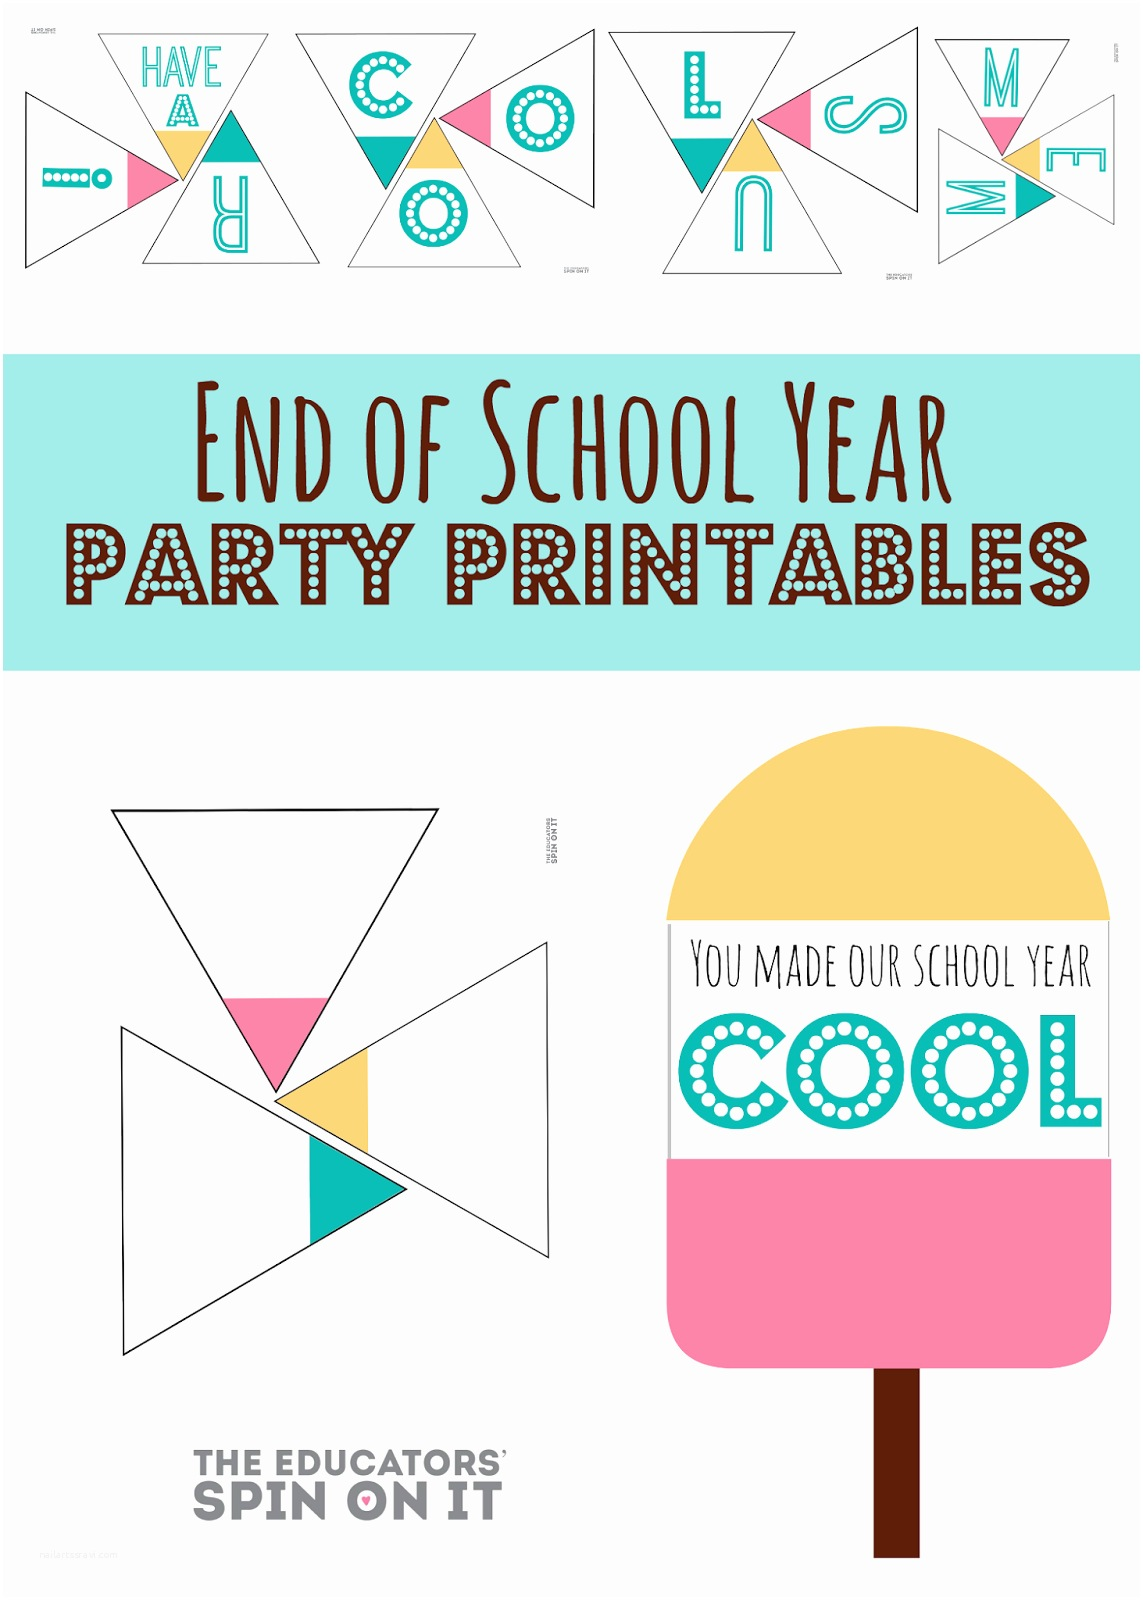 Year End Party Invitation Templates the Educators Spin It End Of School Year Party Idea